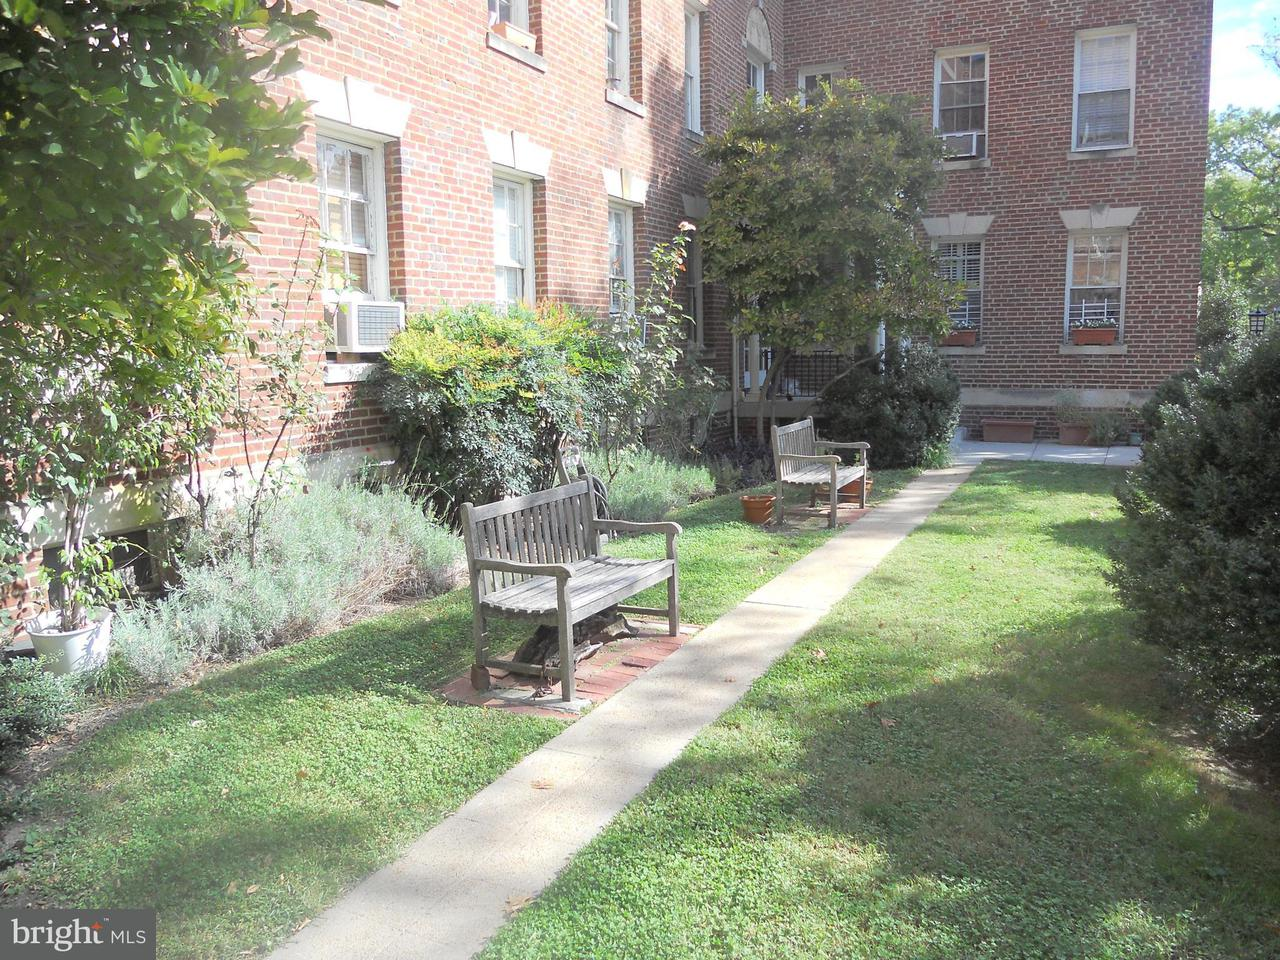 Additional photo for property listing at 2531 Q St NW #203  Washington, District Of Columbia 20007 United States